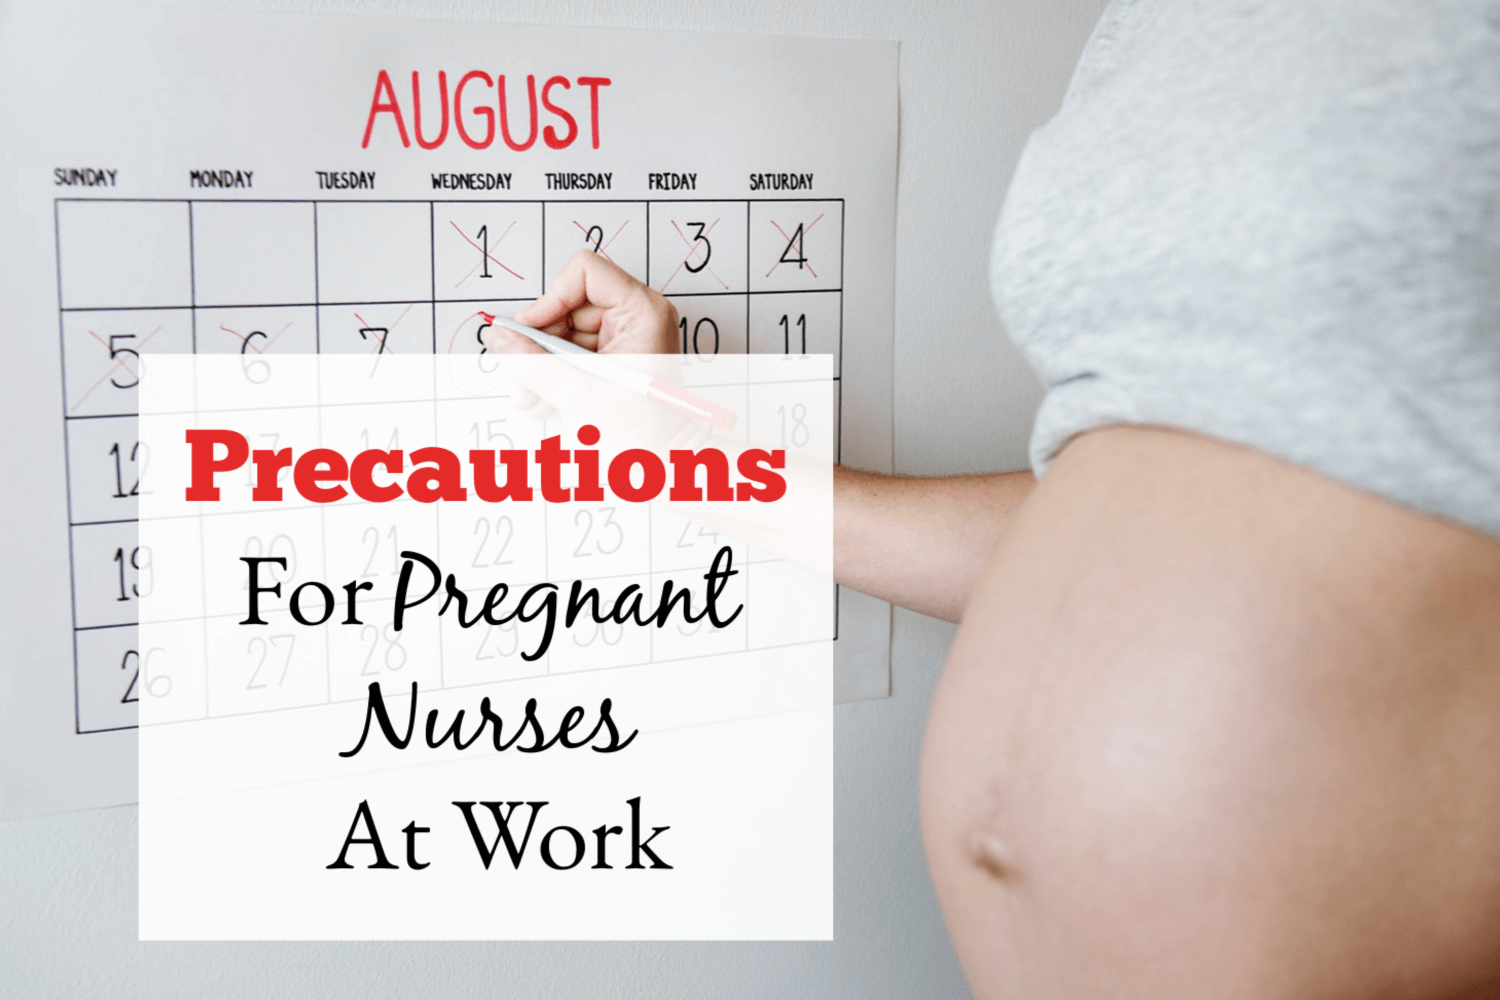 Pregnant Nurse Precautions To Consider At Work